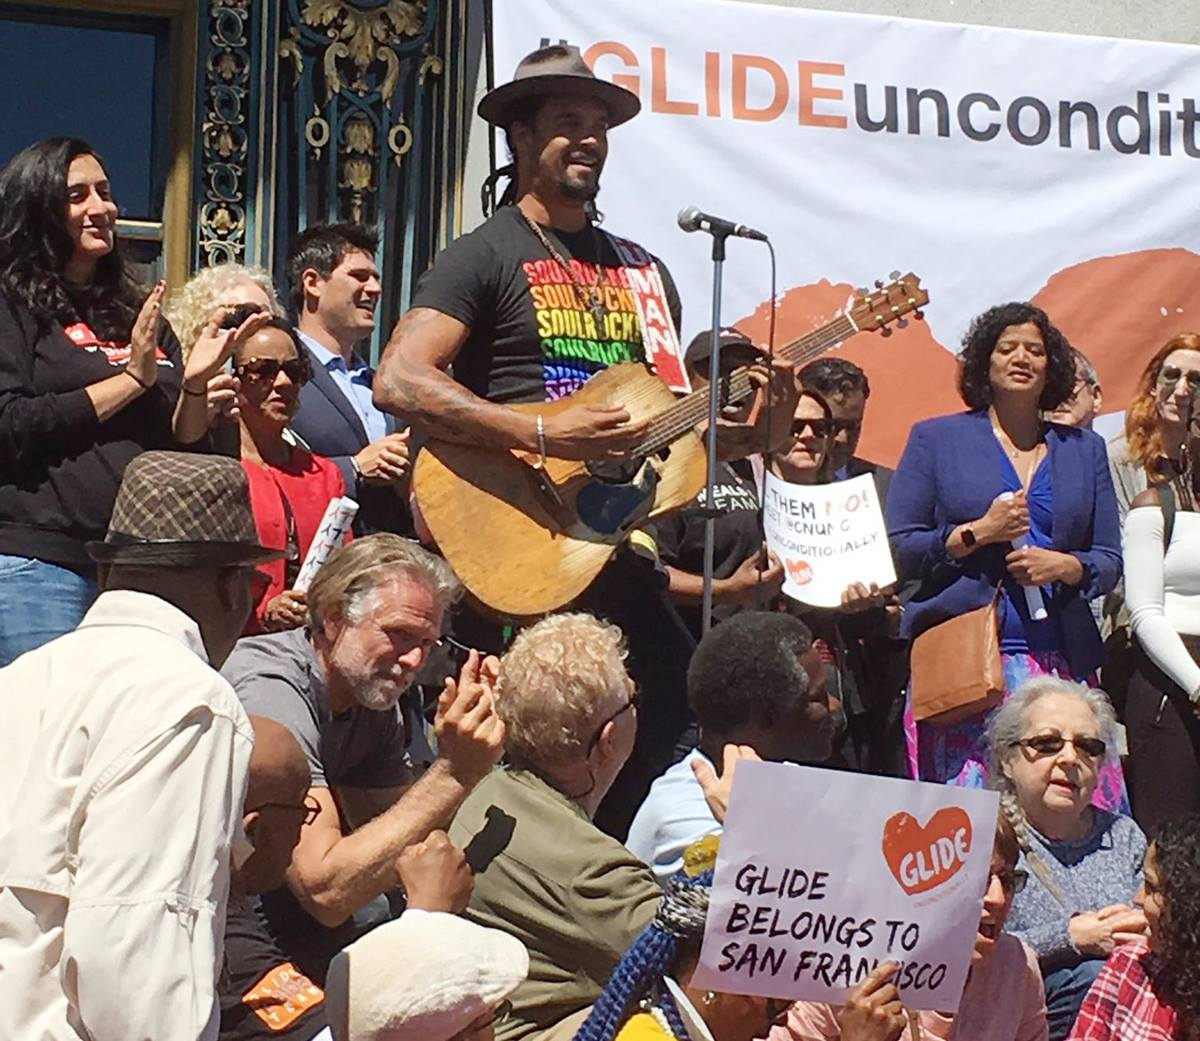 Singer Michael Franti joins the rally for Glide Memorial United Methodist Church in front of San Francisco's City Hall on June 21. Photo by Beth Frankland